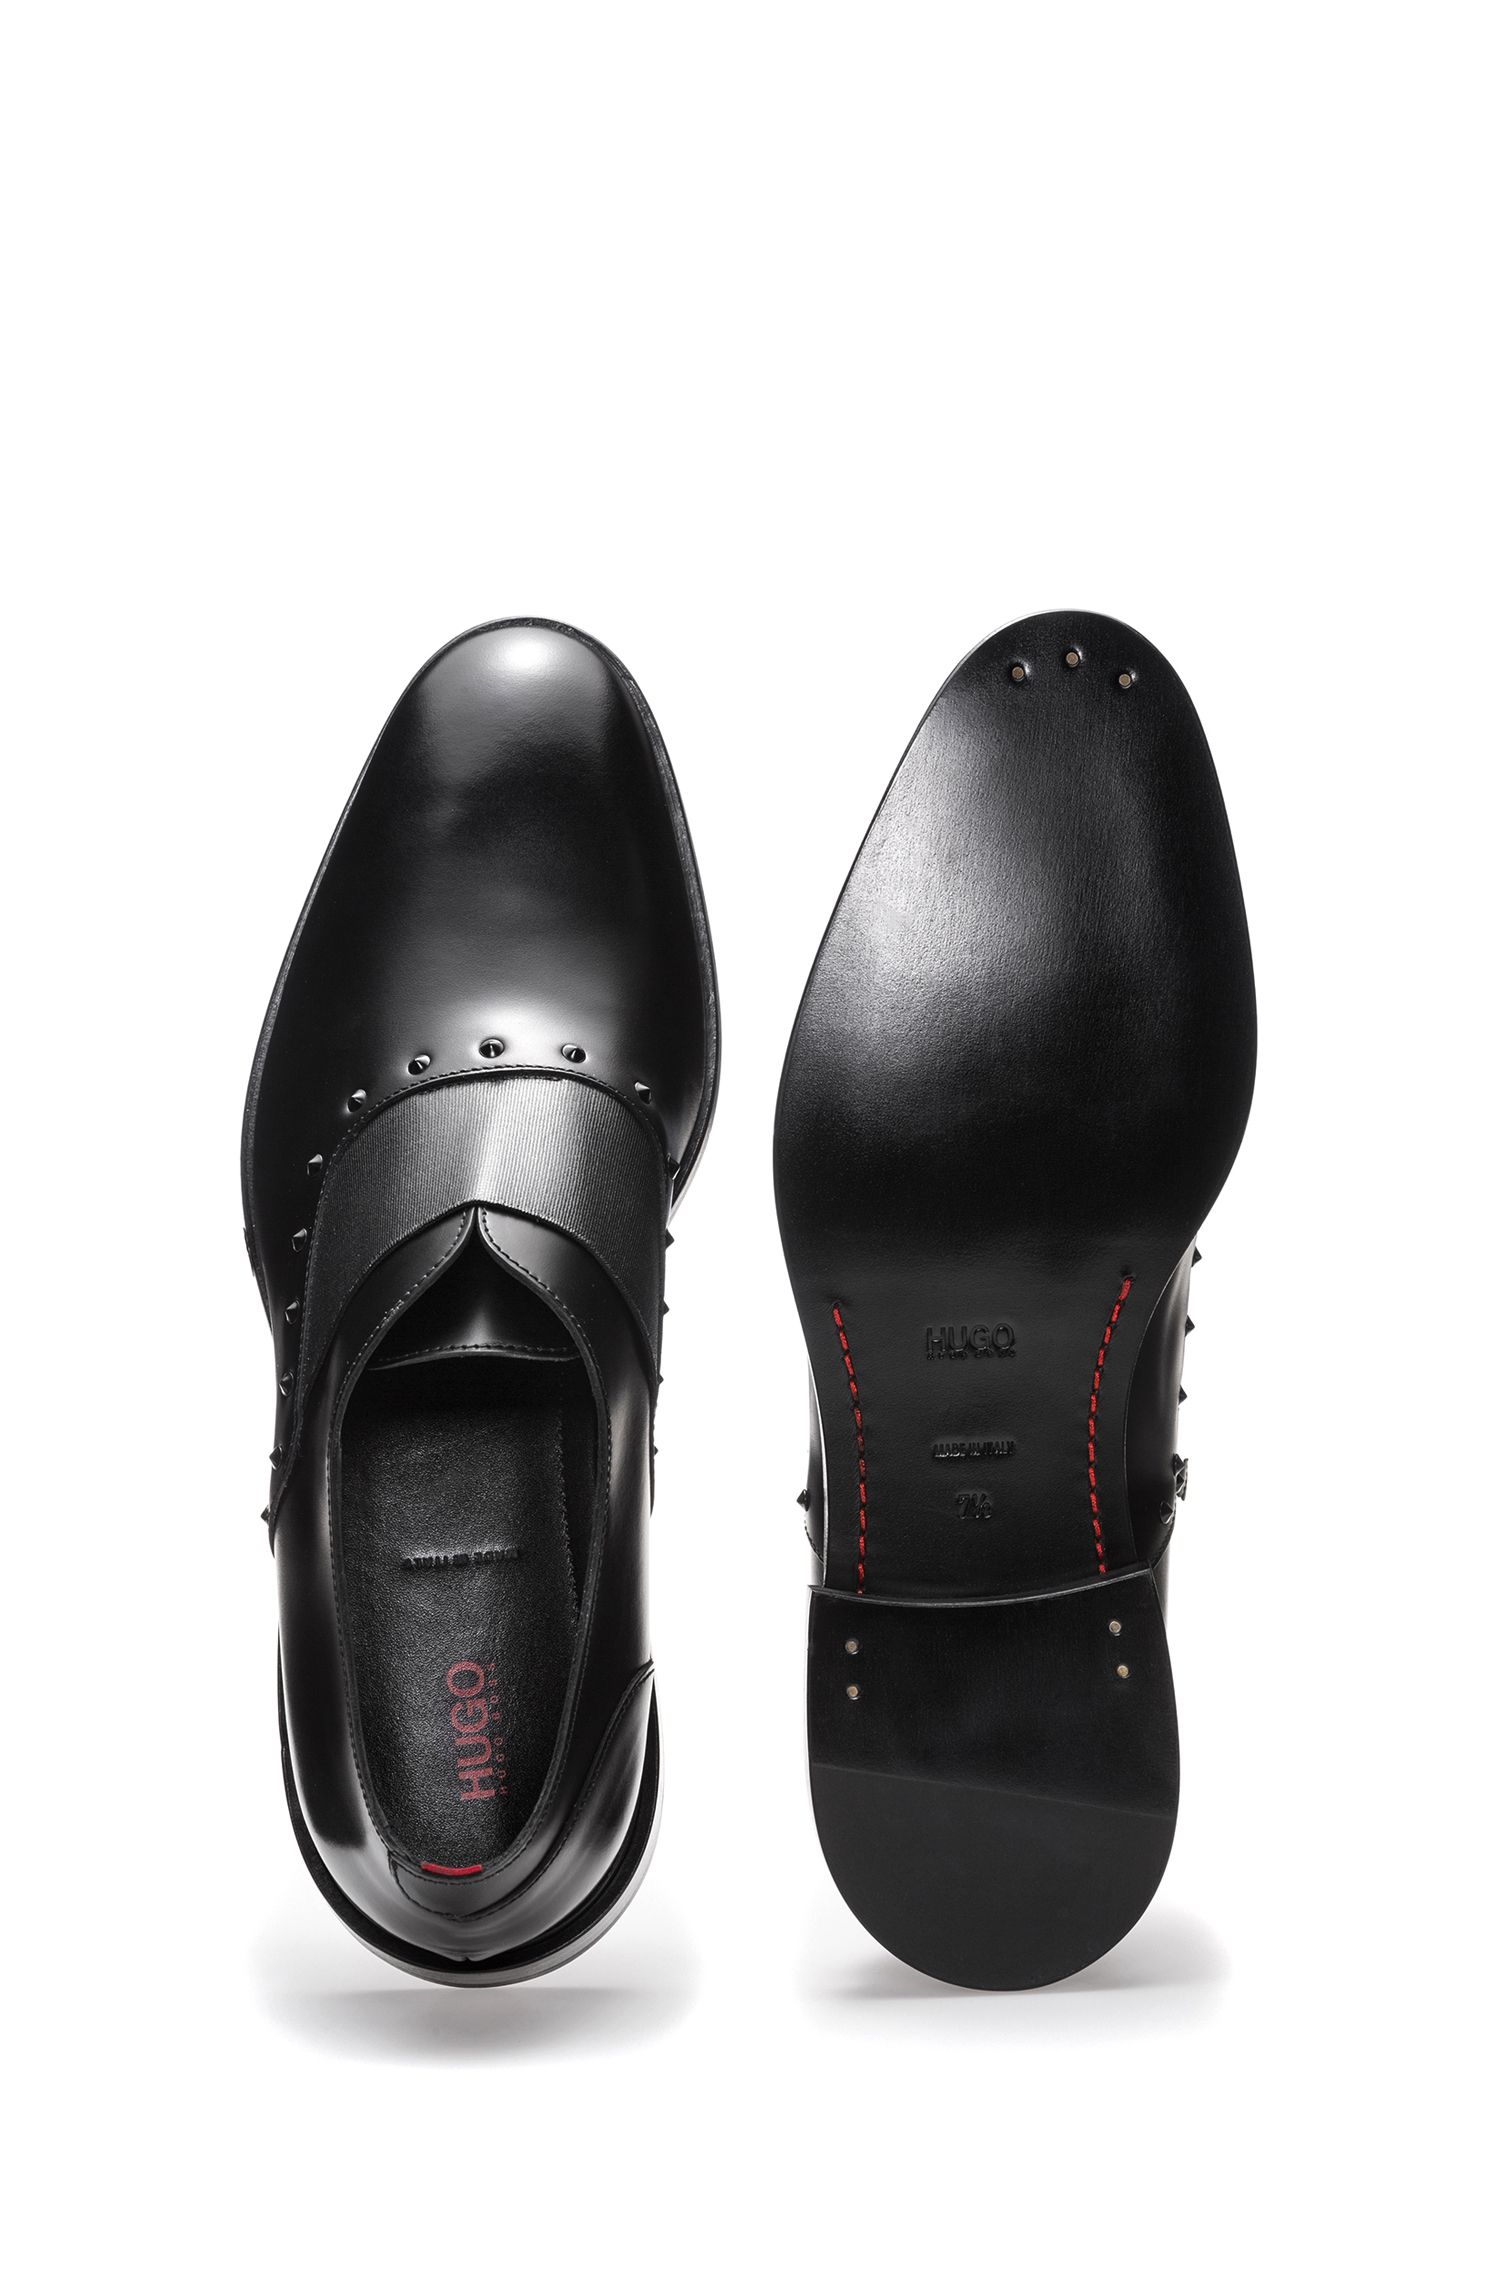 Slip-on leather dress shoes with stud detailing